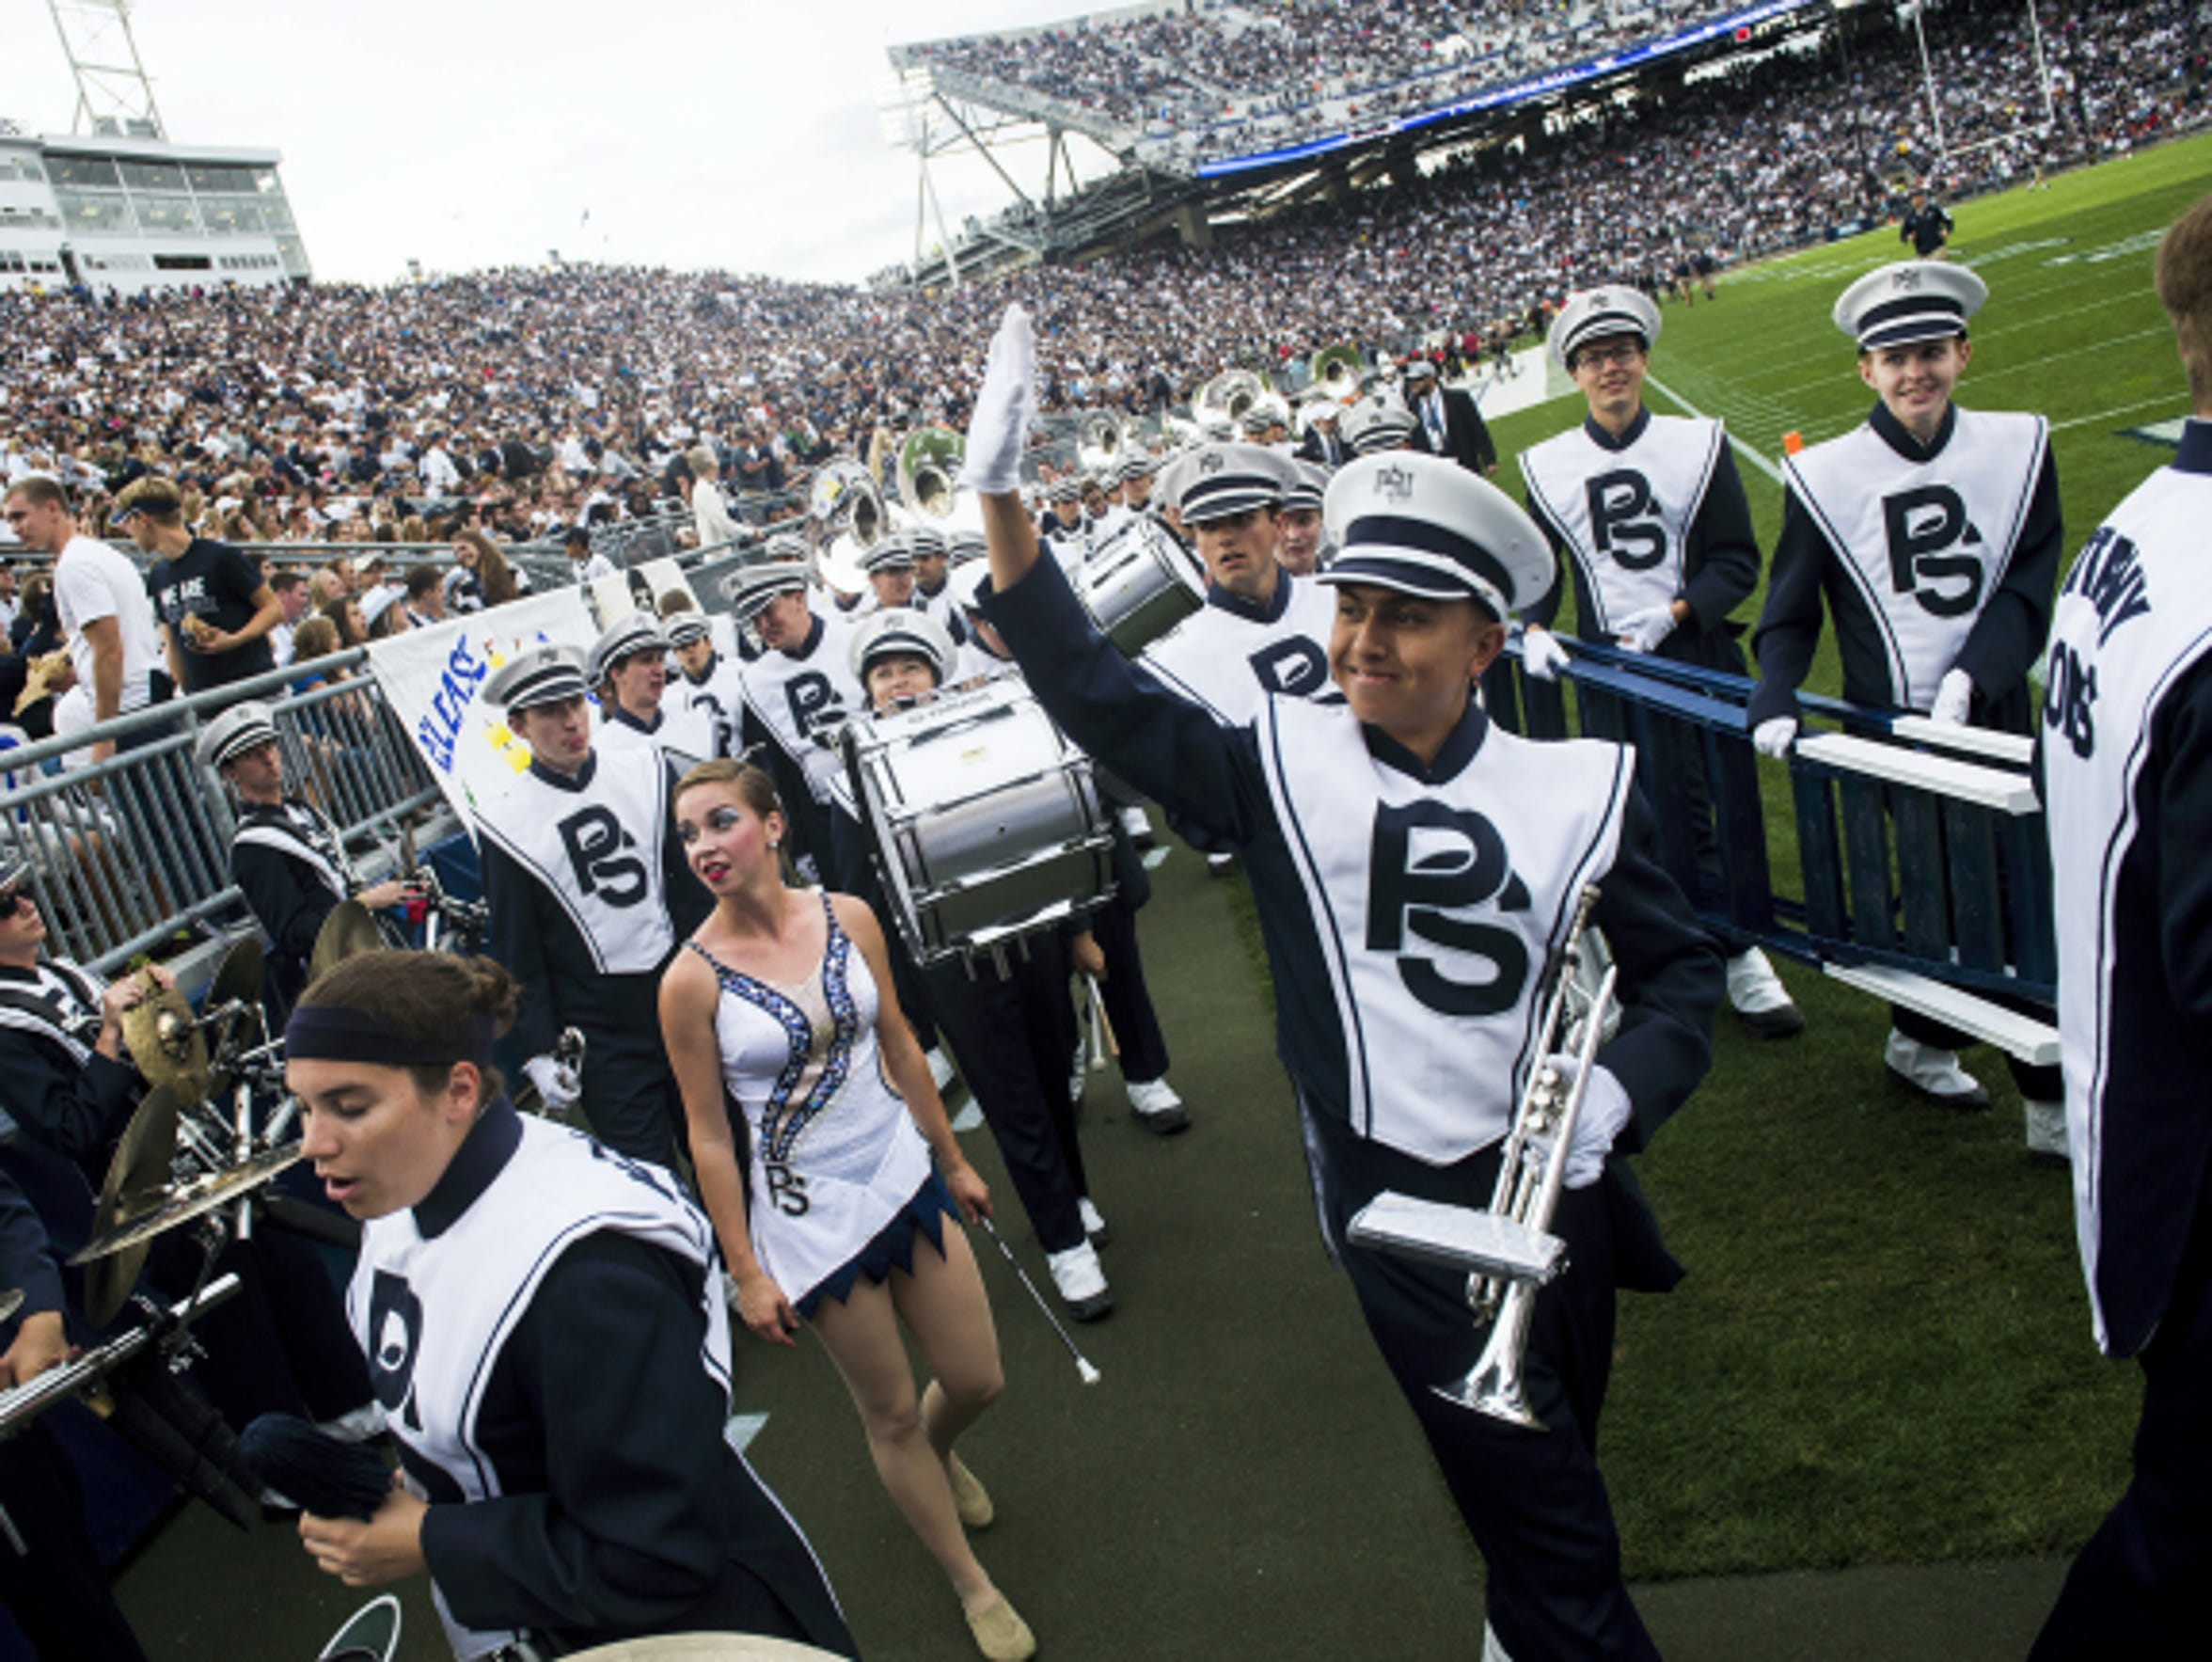 Members of the Penn State Blue Band wave to the audience